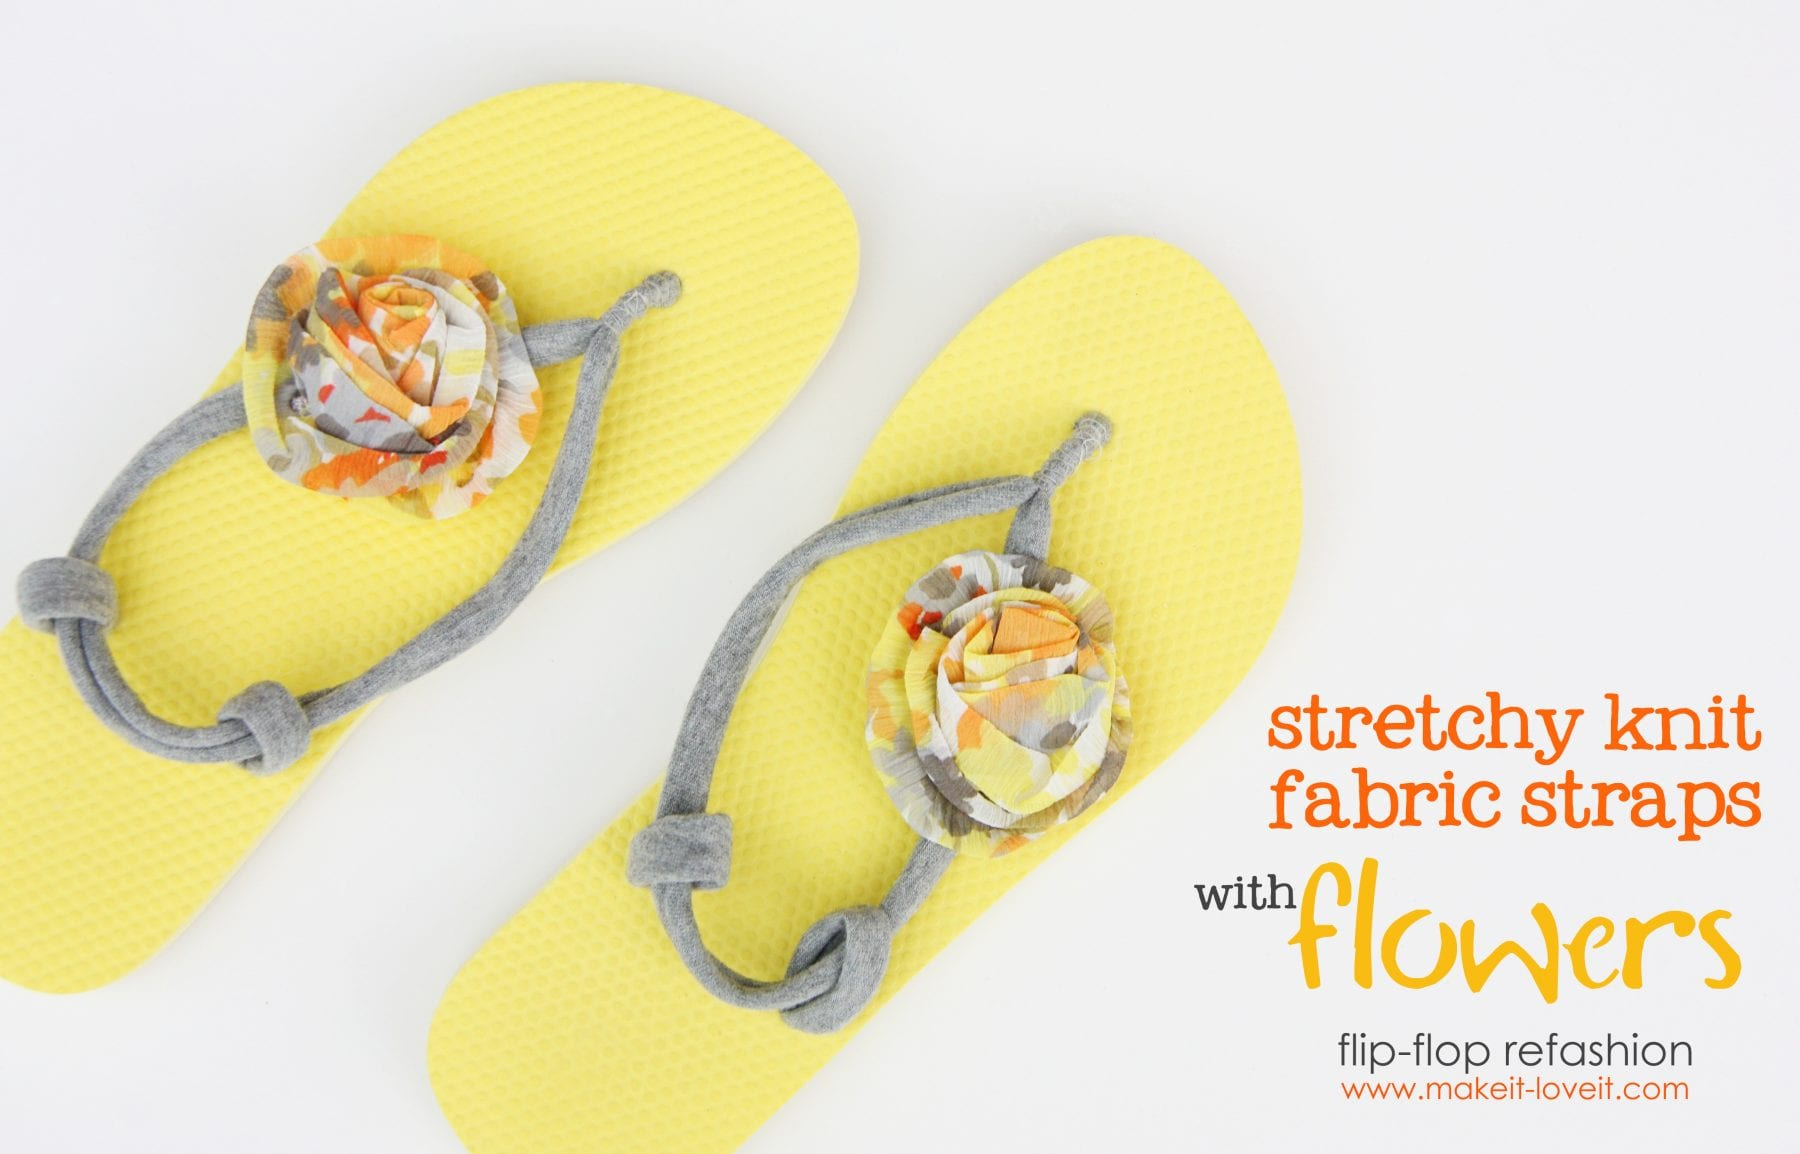 Flip-Flop Refashion: Part 4 (Stretchy Knit Straps with Flowers)